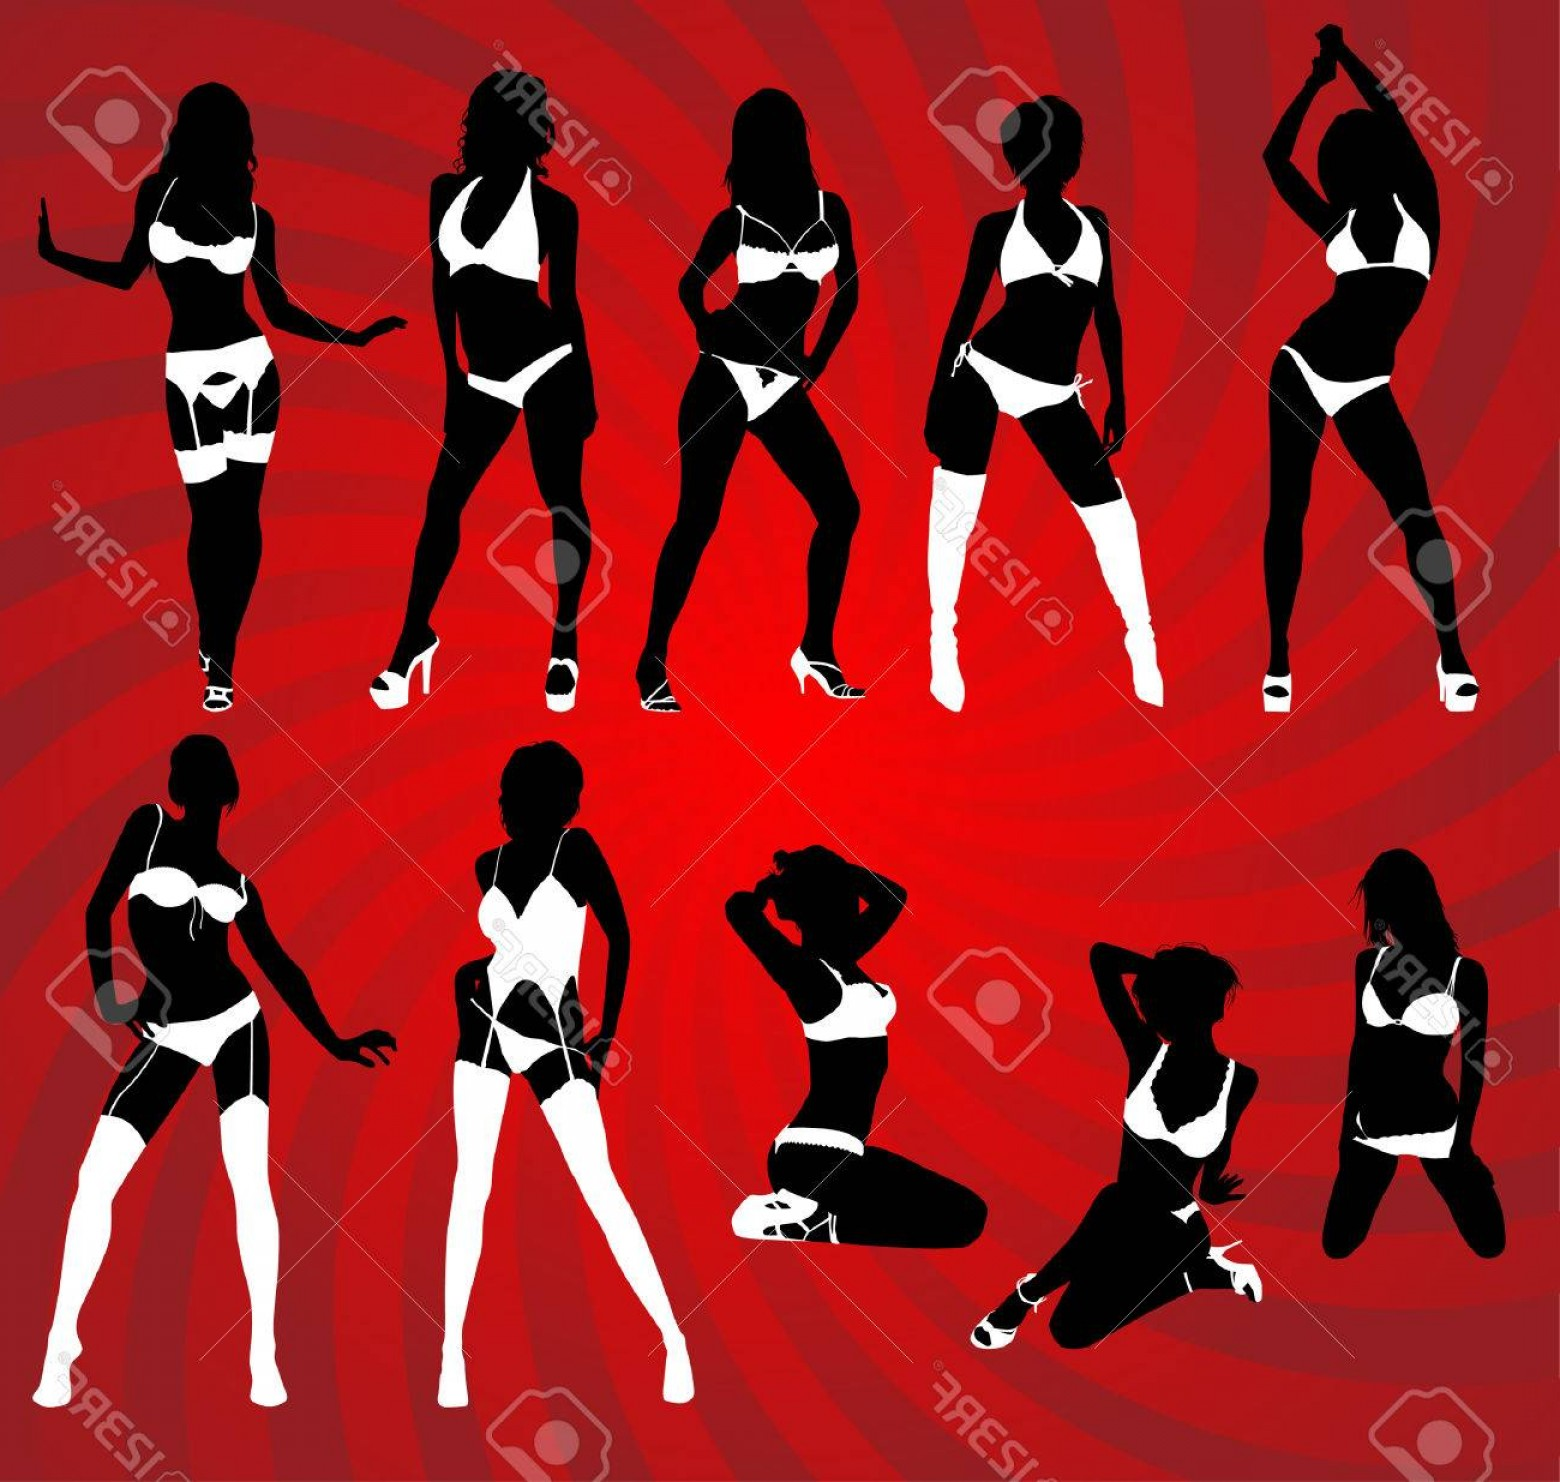 Sexy Silhouette Vector Art: Photosilhouette Of Woman In Sexy Lingerie